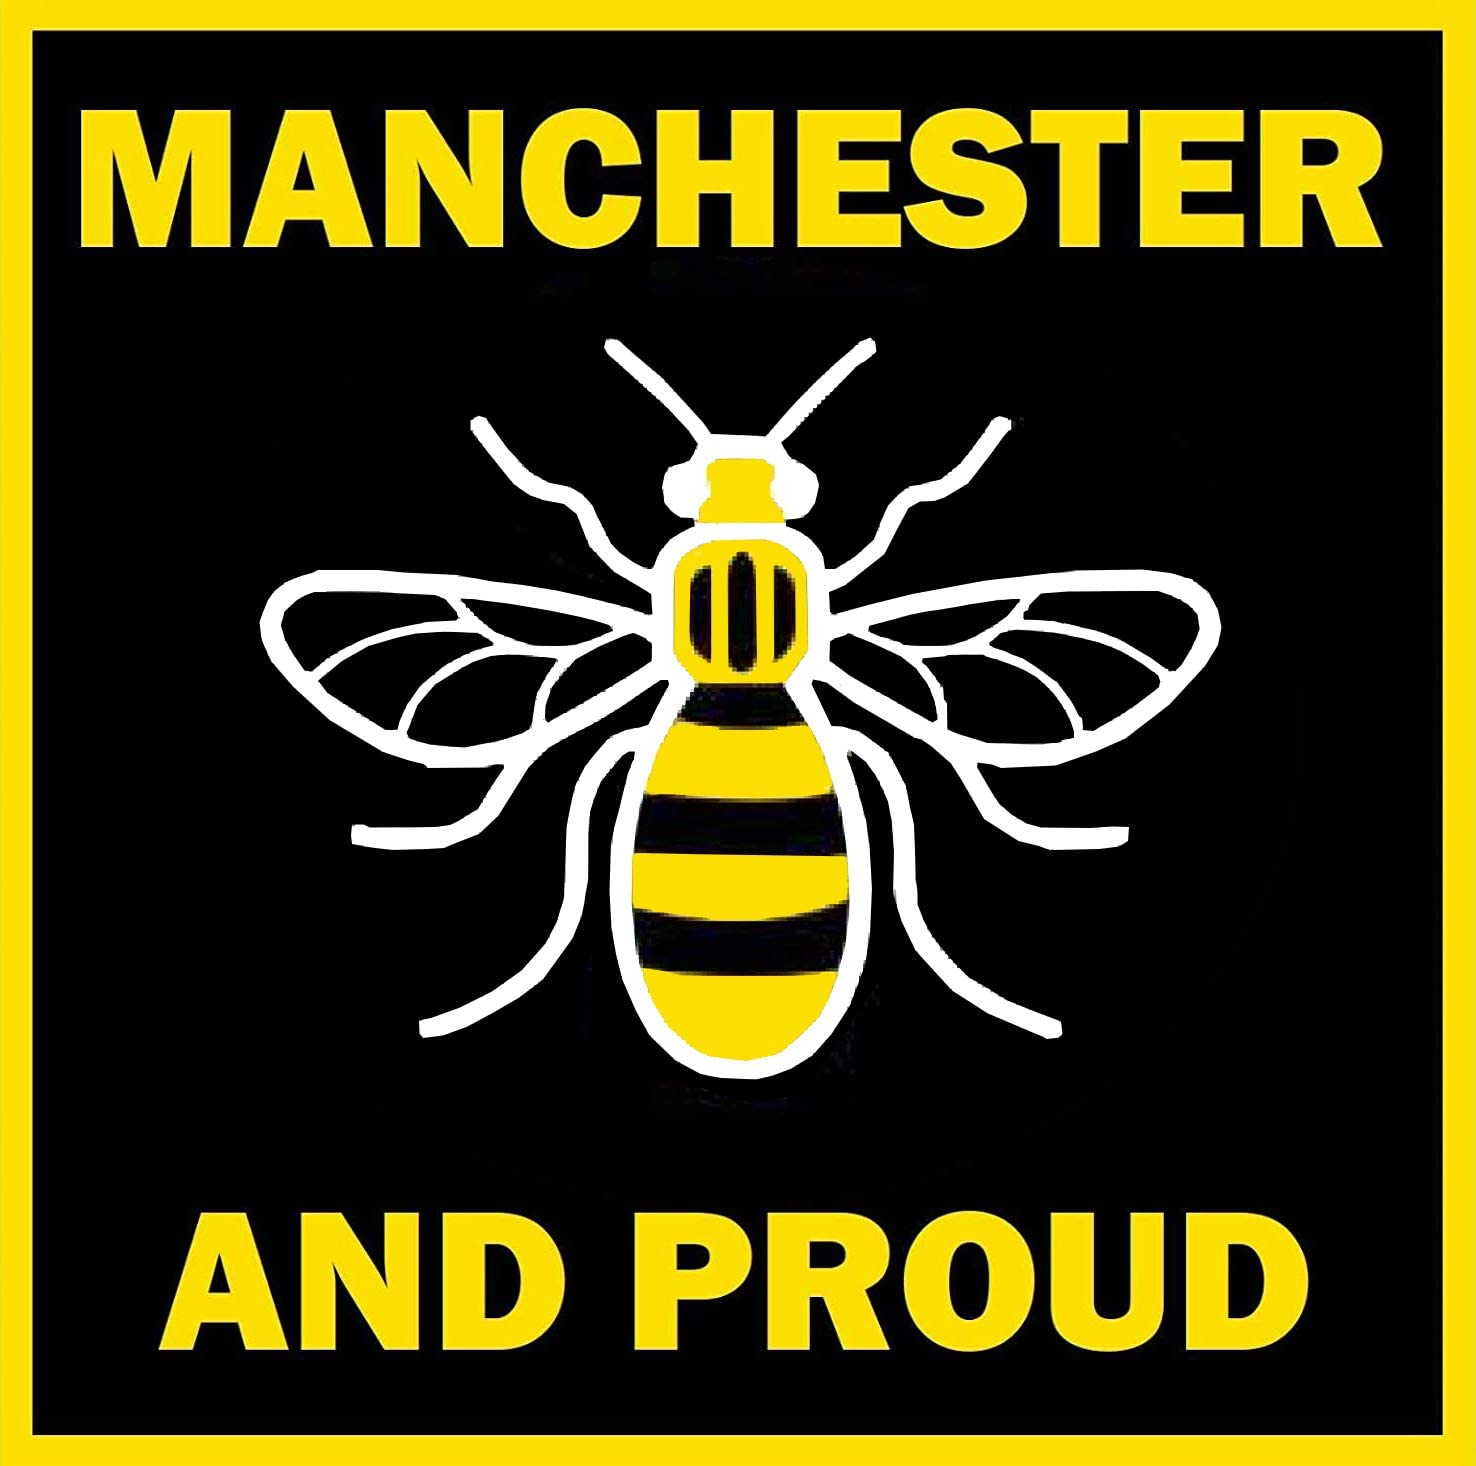 NDTS 12X12 Inches Metal Sign Manchester Bee (Proud) Fun Novelty Souvenir Coasters Warning Sign